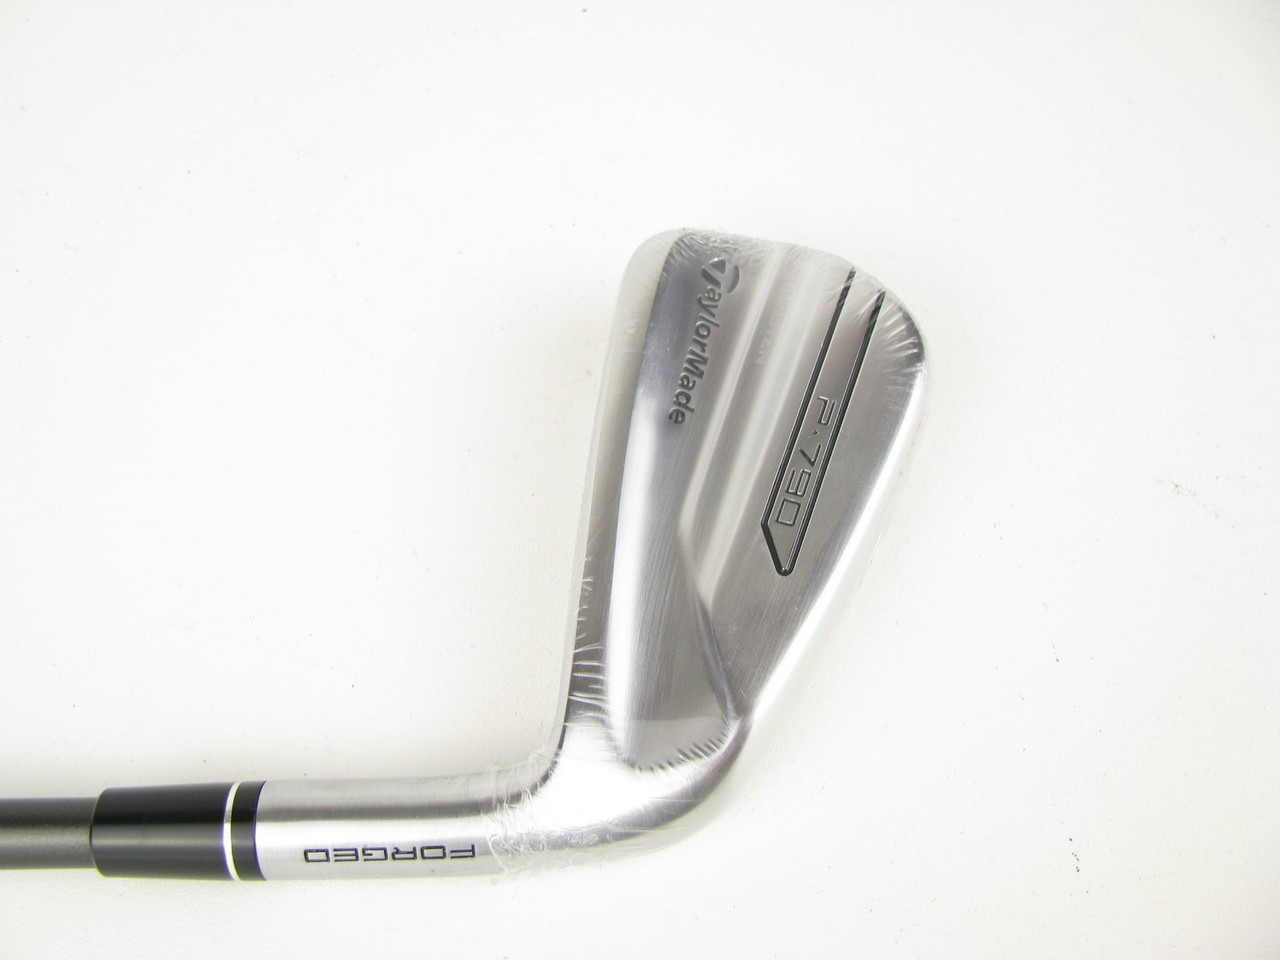 NEW TaylorMade P790 Forged 3 iron w/ Graphite Recoil ES 780 F4 Stiff